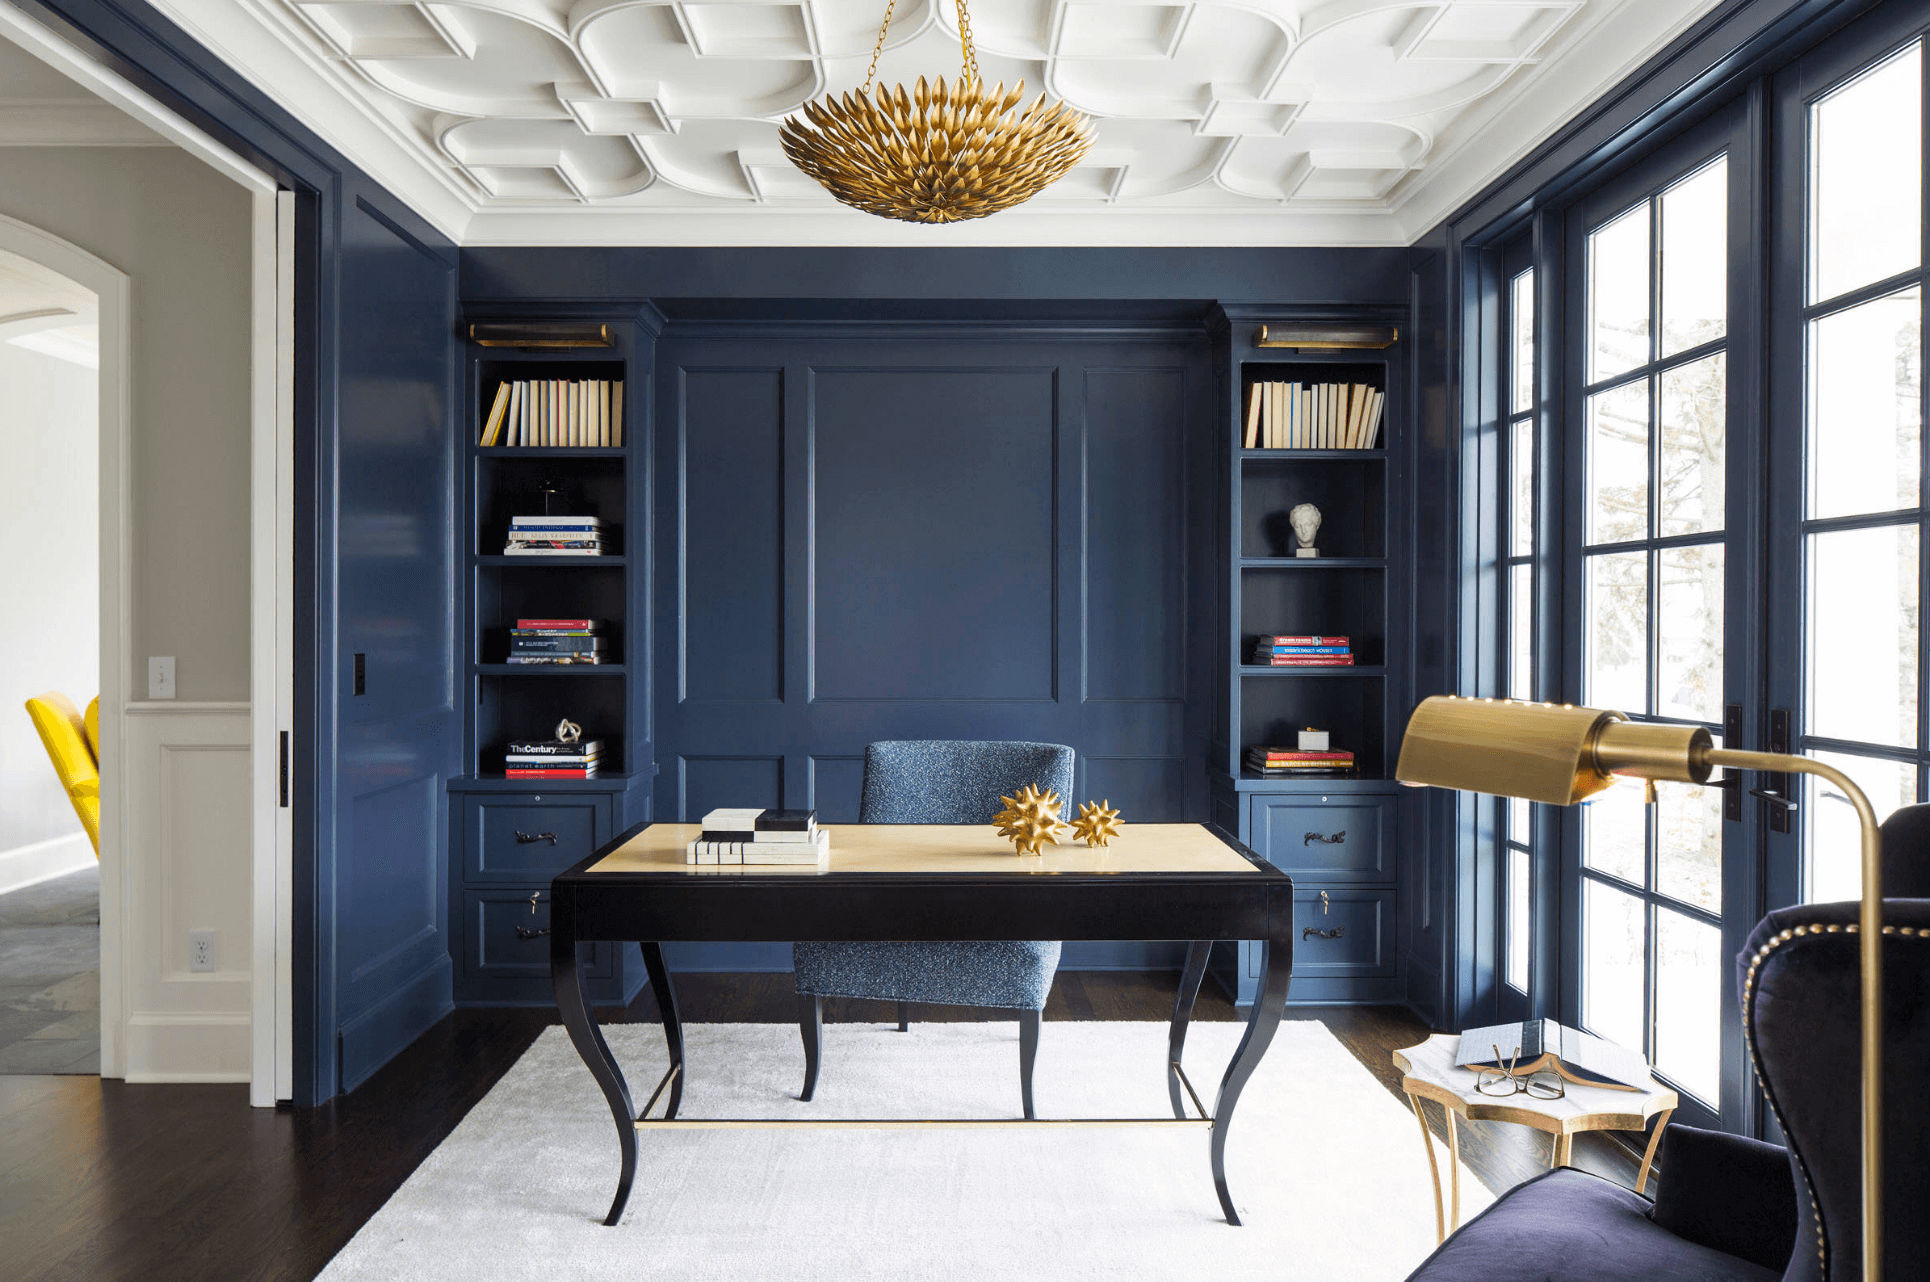 modern home office wall colors navy modern navy office rich wall color can complement an otherwise neutral palette ideas for your home dcor favorite places spaces